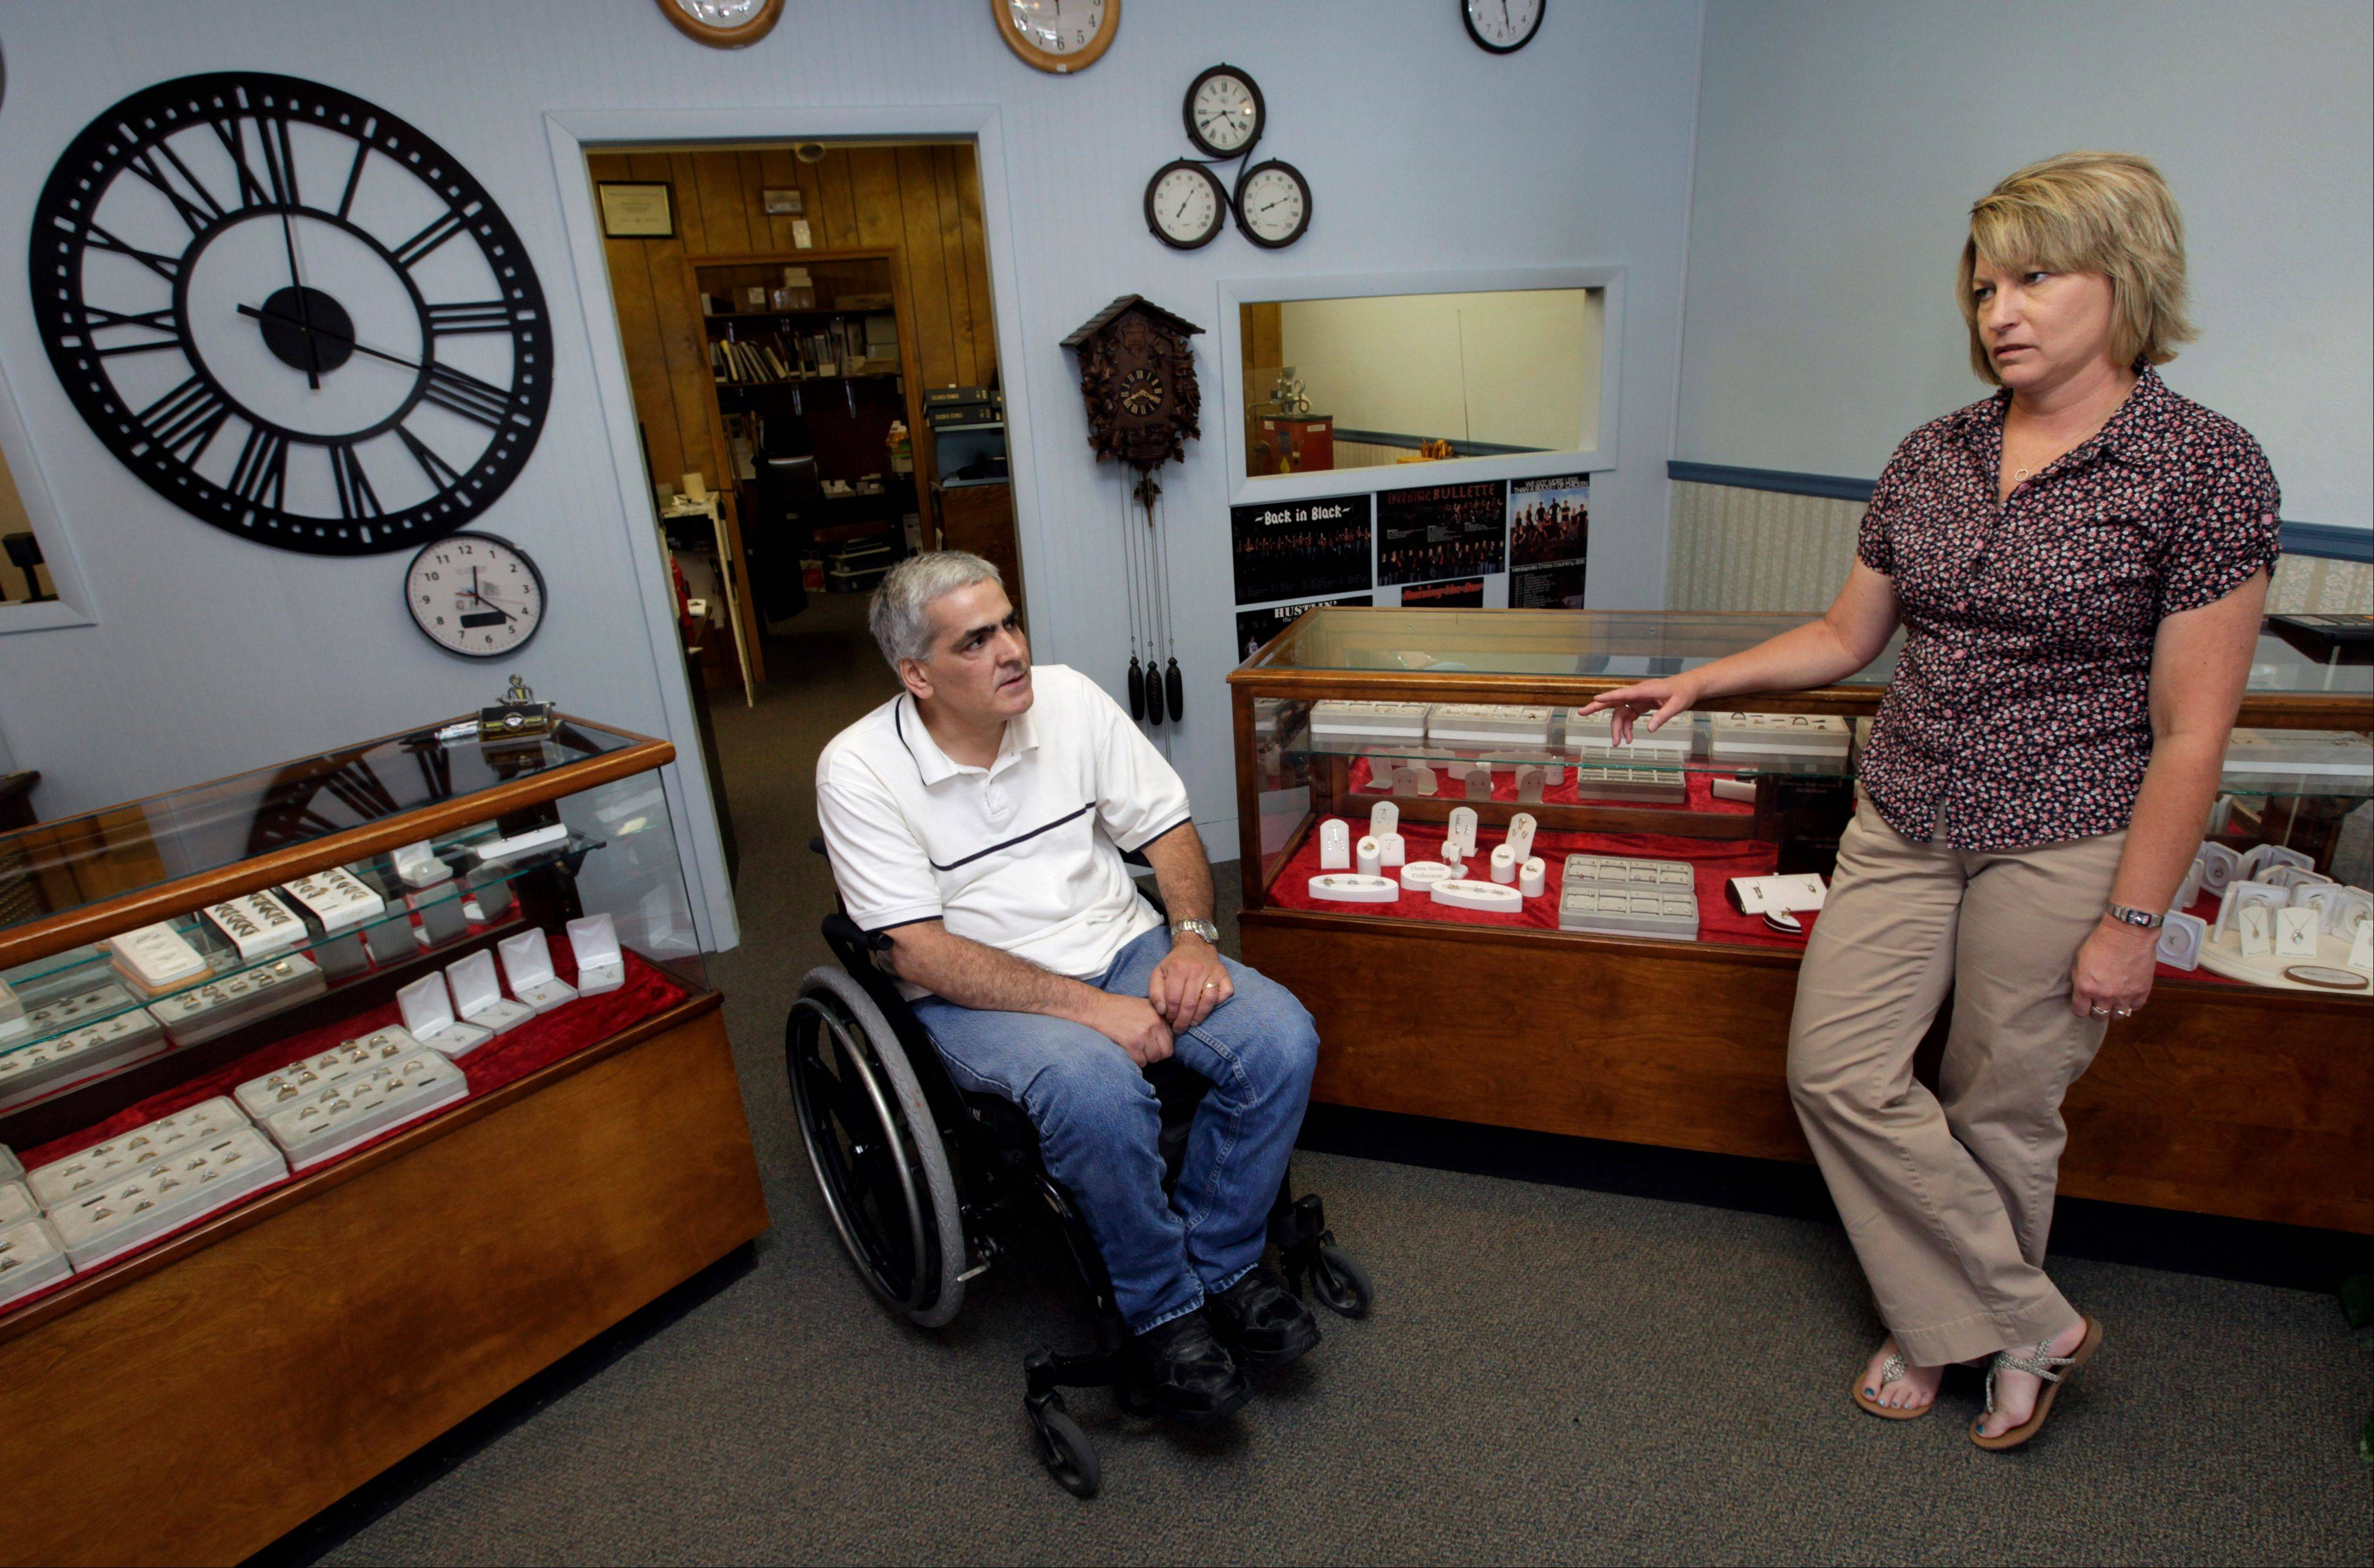 Mike Lamm talks with his wife Tracey in the showroom of his jewelry shop in Mediapolis, Iowa.